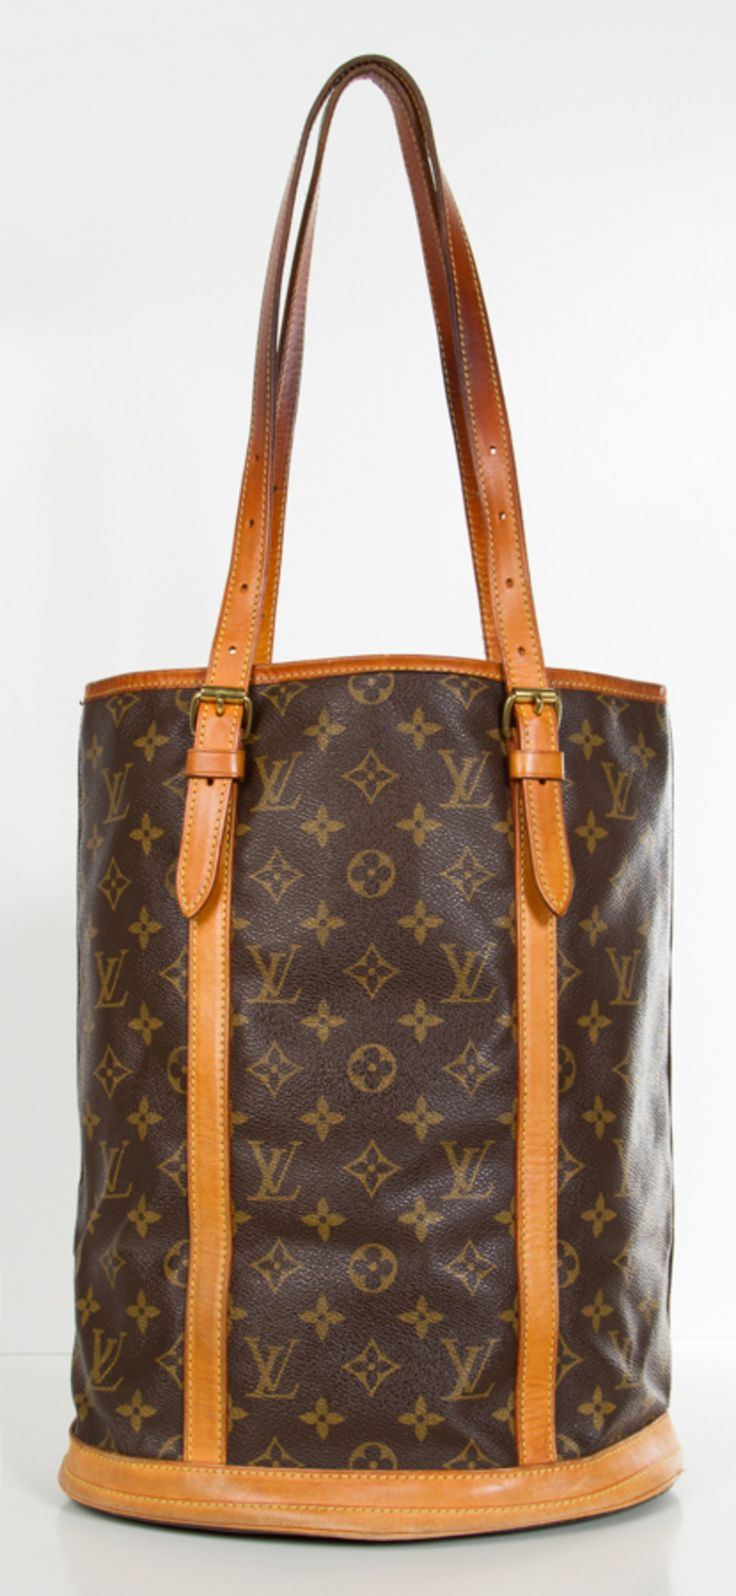 used louis vuitton bags for sale philippines